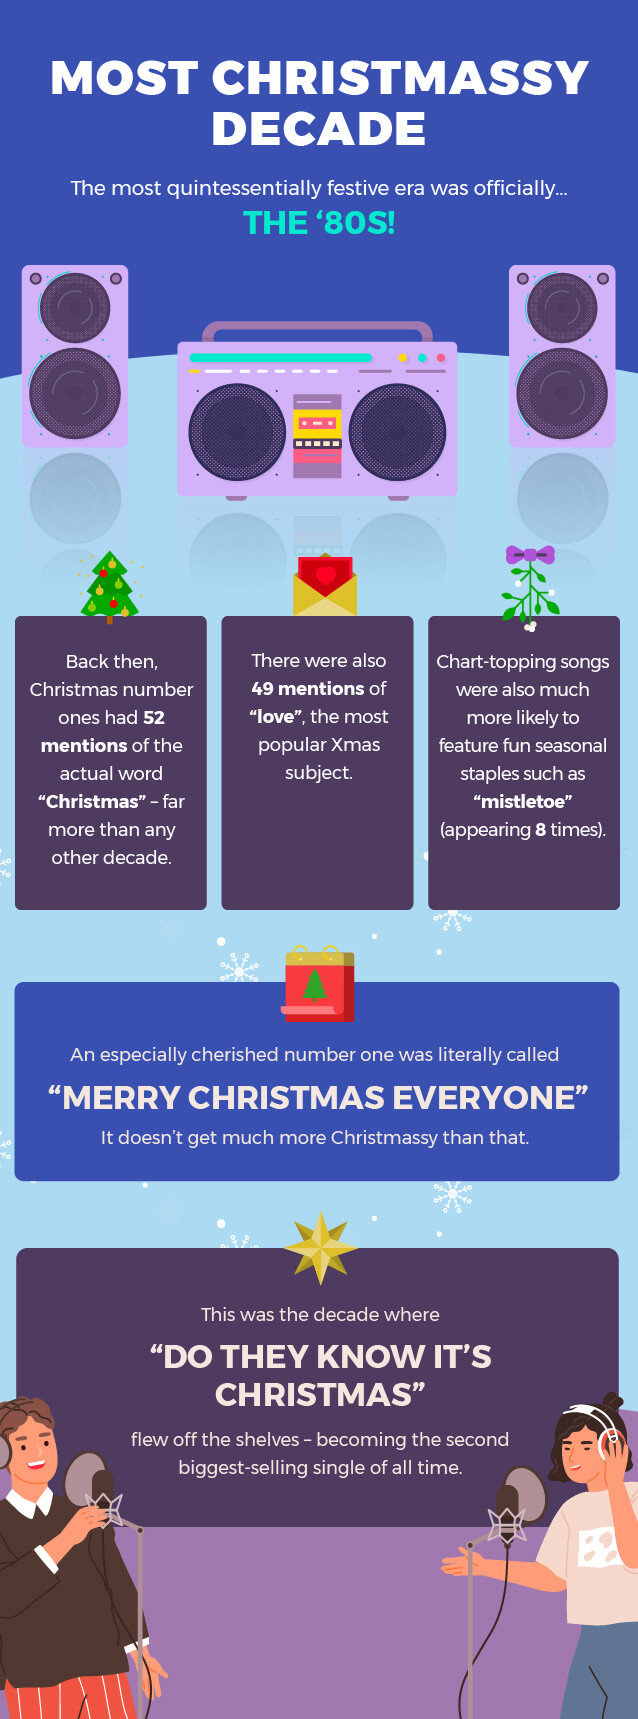 The most Christmassy decade